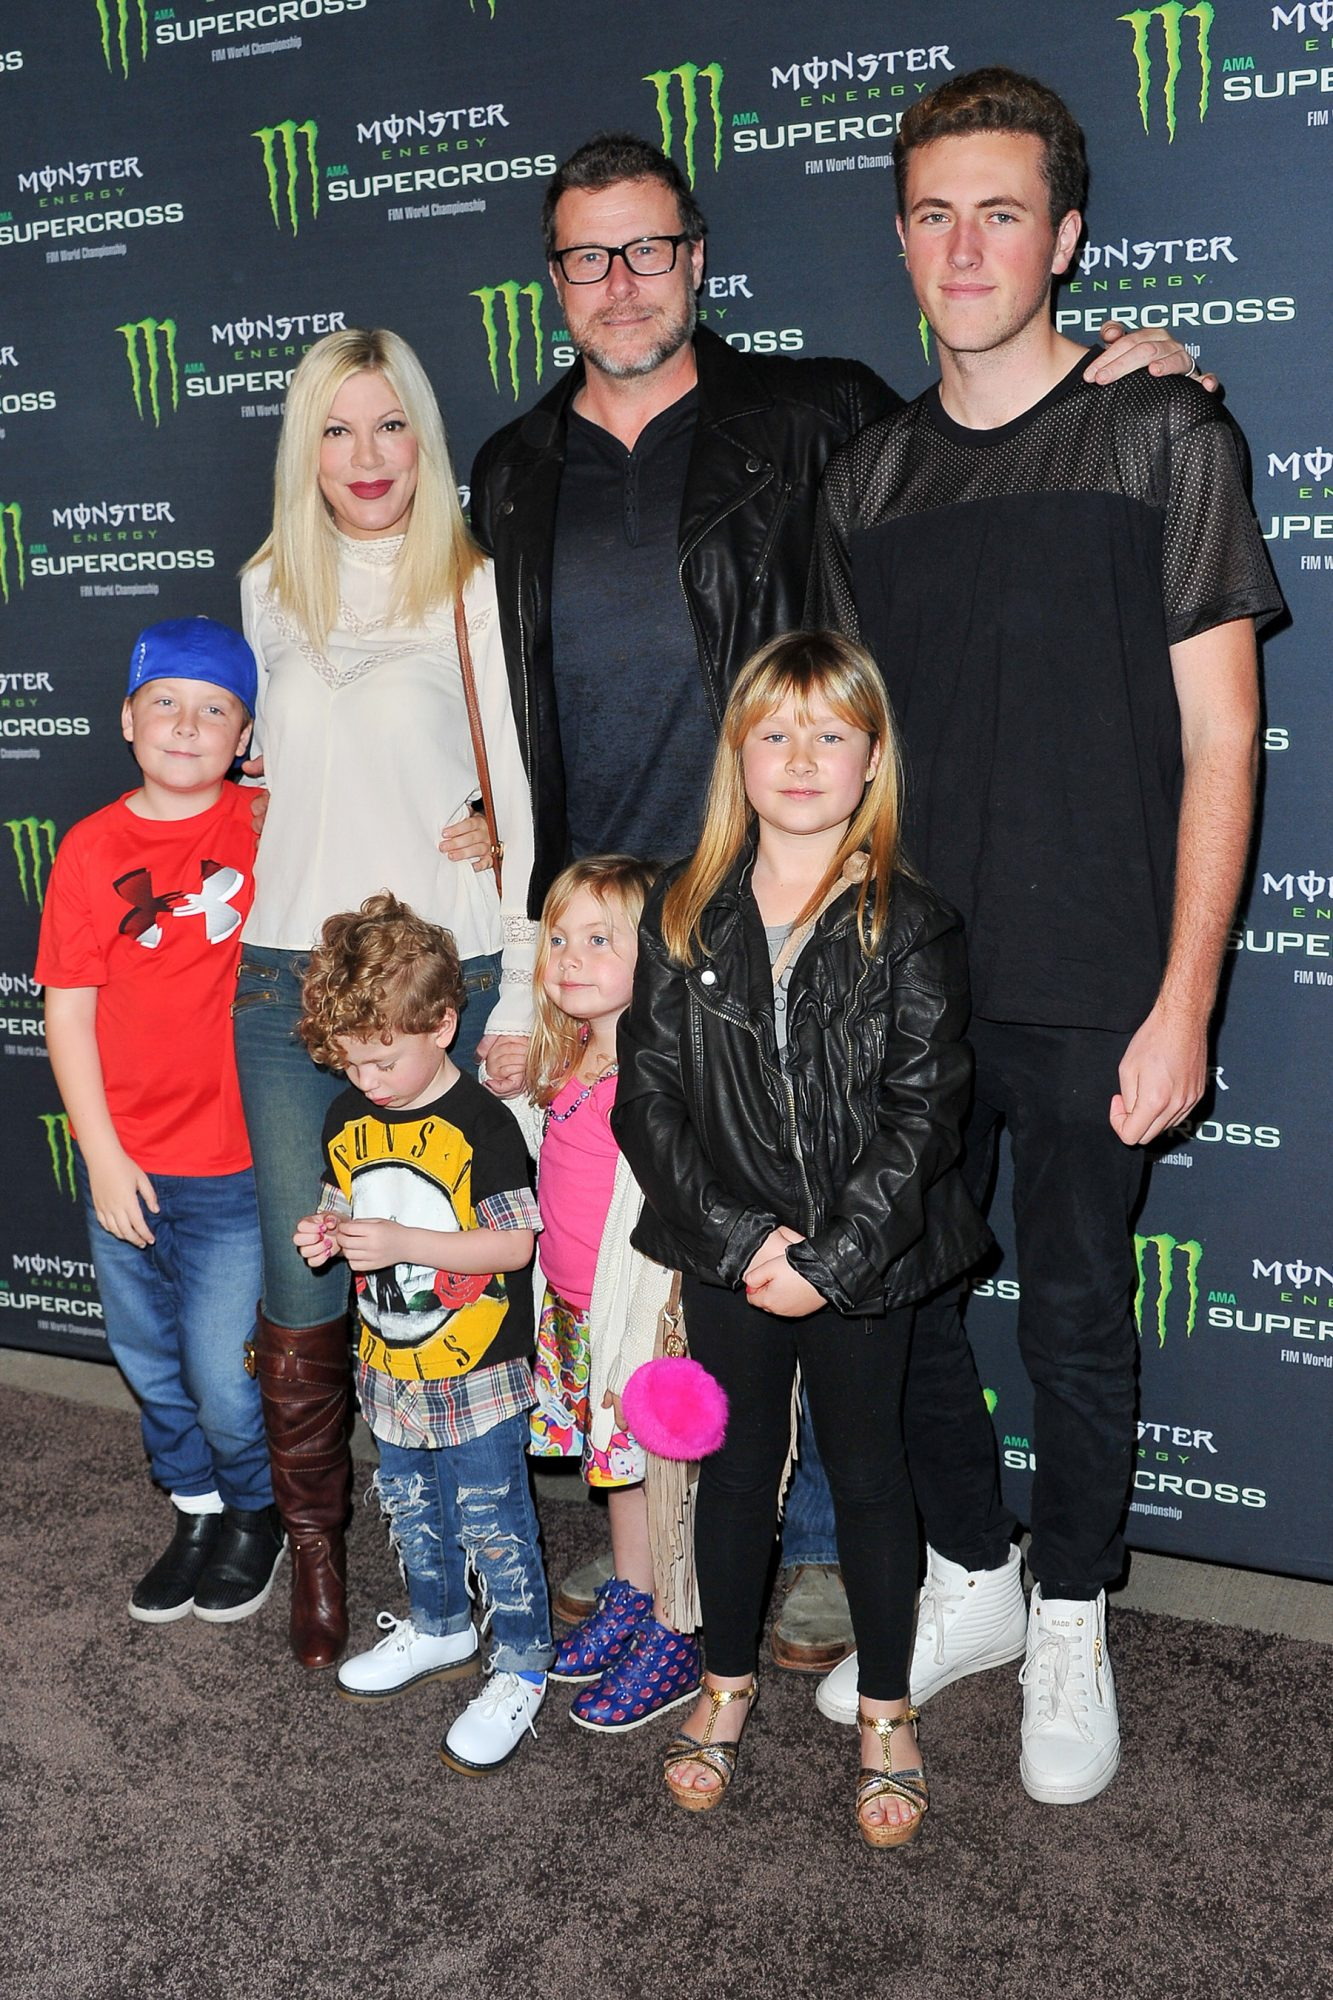 Tori Spelling, actor Dean McDermott and their kids Jack McDermott (R), Liam McDermott (L), Fin McDermott (Front Left), Hattie McDermott (Front Center), and Stella McDermott